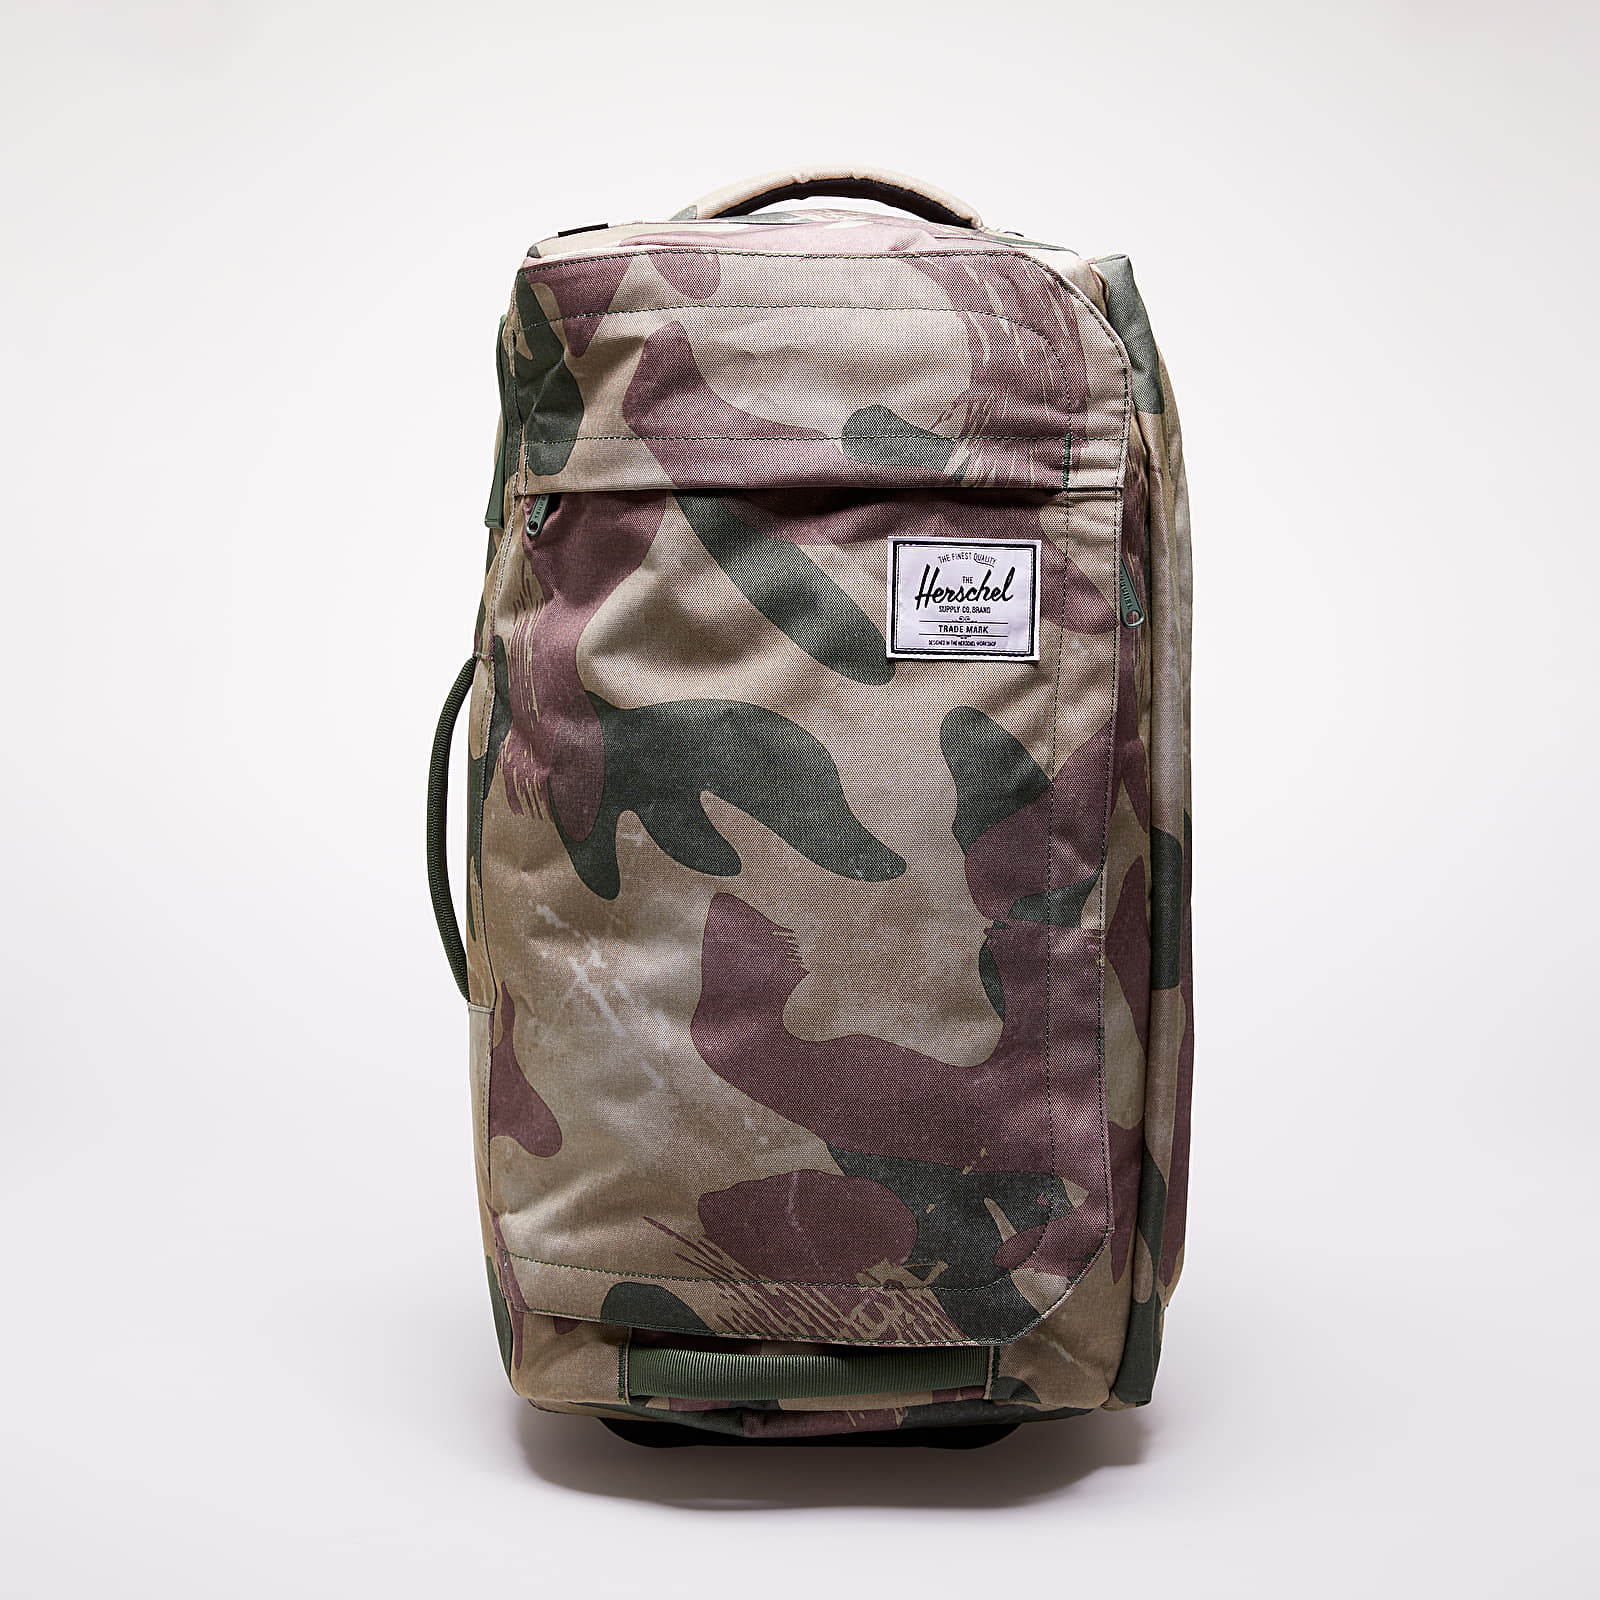 Batohy a tašky Herschel Supply Co. Outfitter Wheelie Luggage Brushstroke Camo